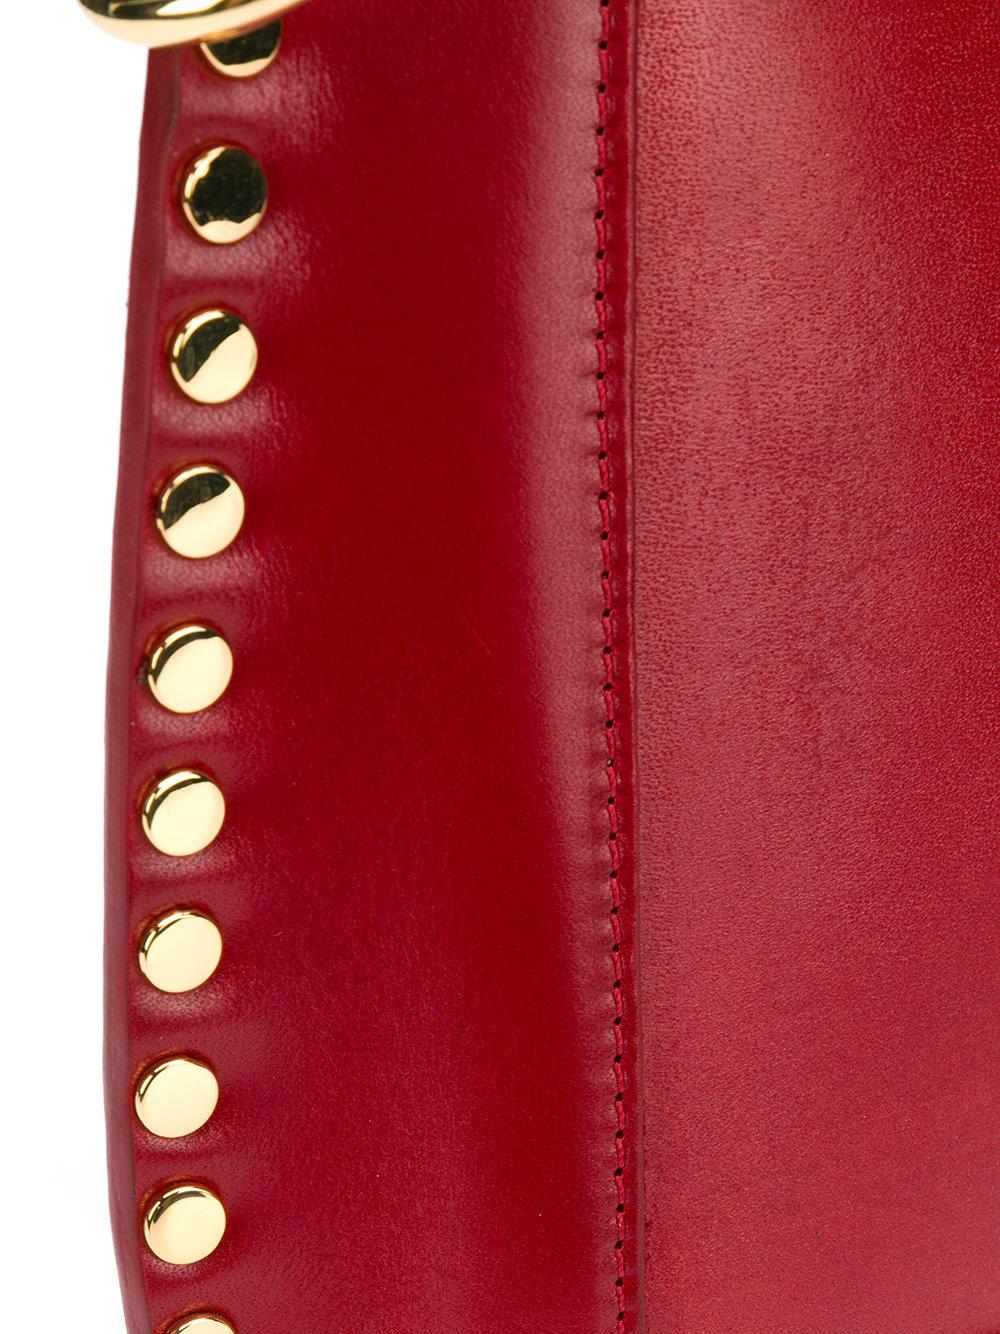 Isabel Marant Leather Mini Crossbody Bag in Red